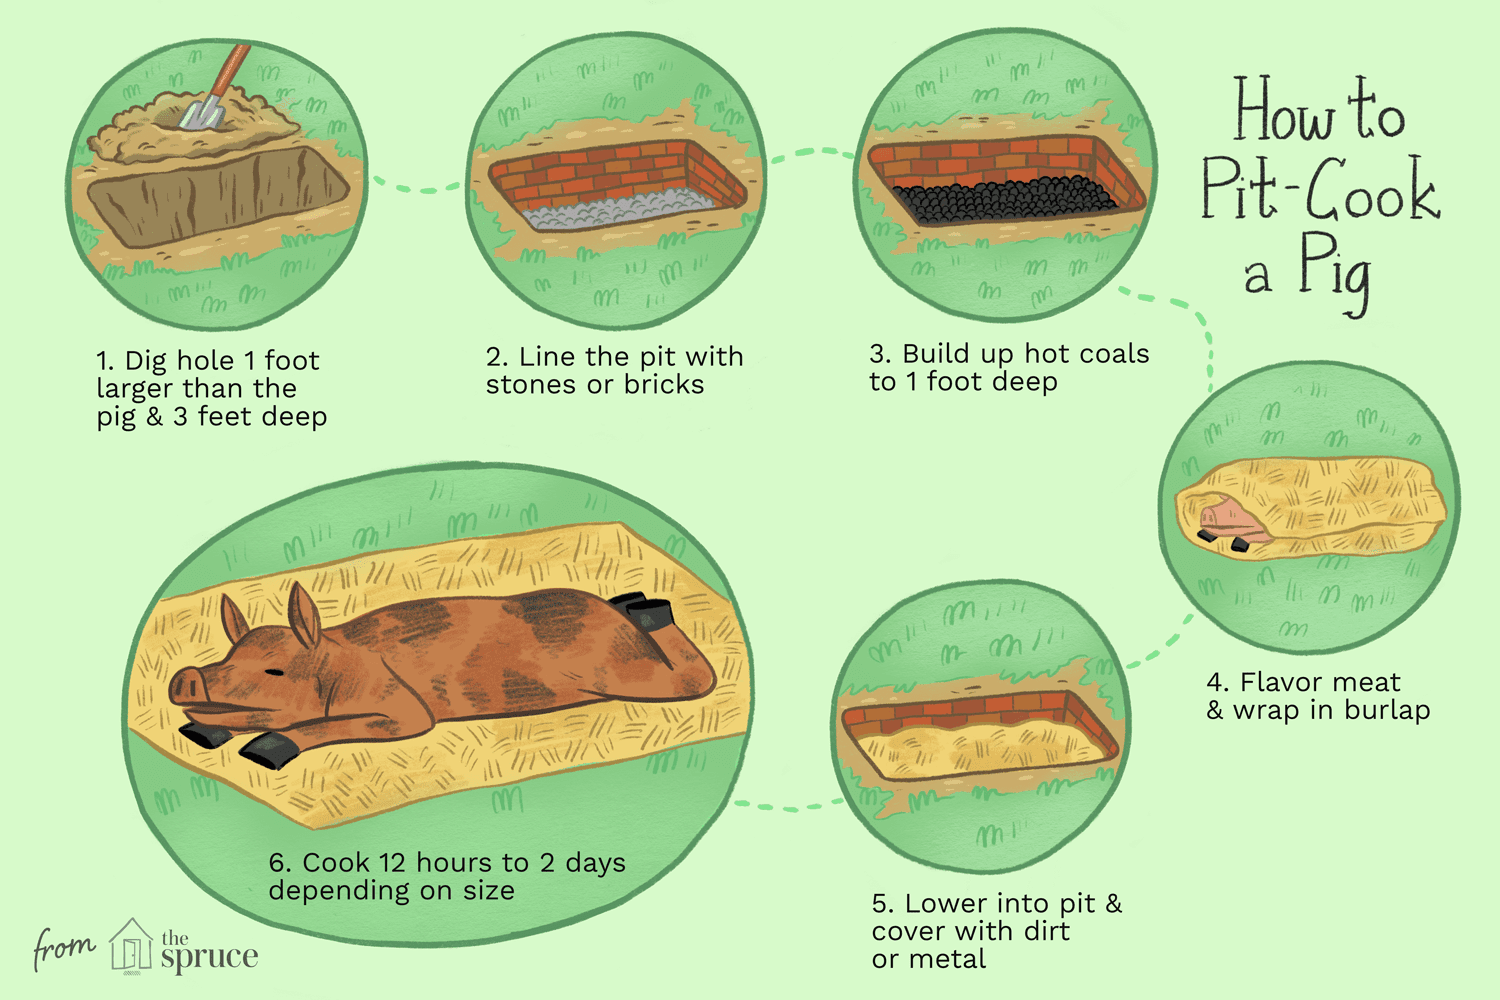 how to pit cook a pig illustration